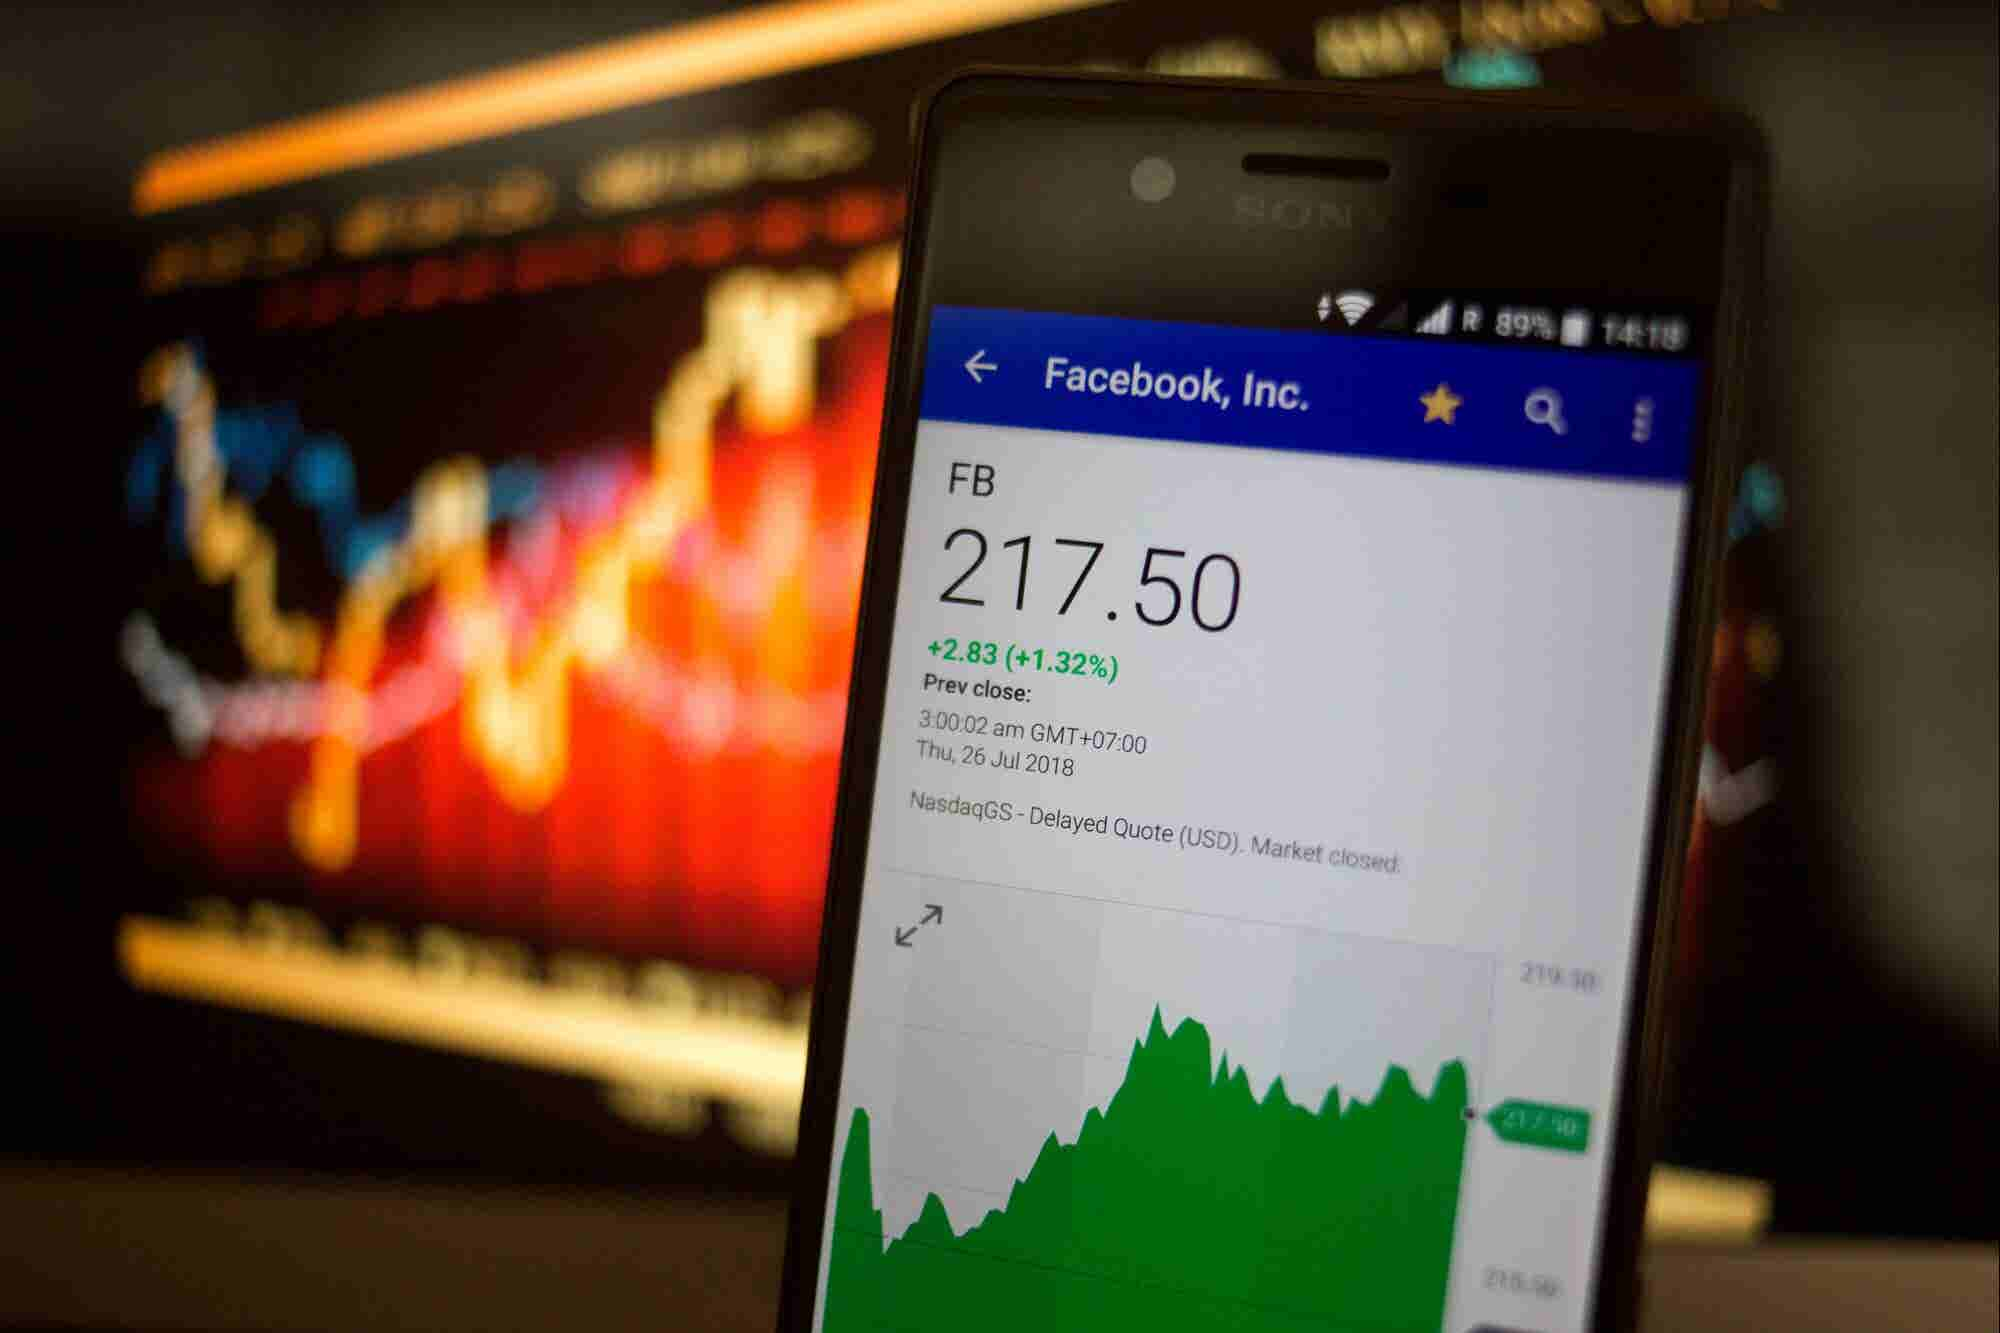 Facebook's Stock Tanks and the 'Fortnite' Founder Is Now a B...